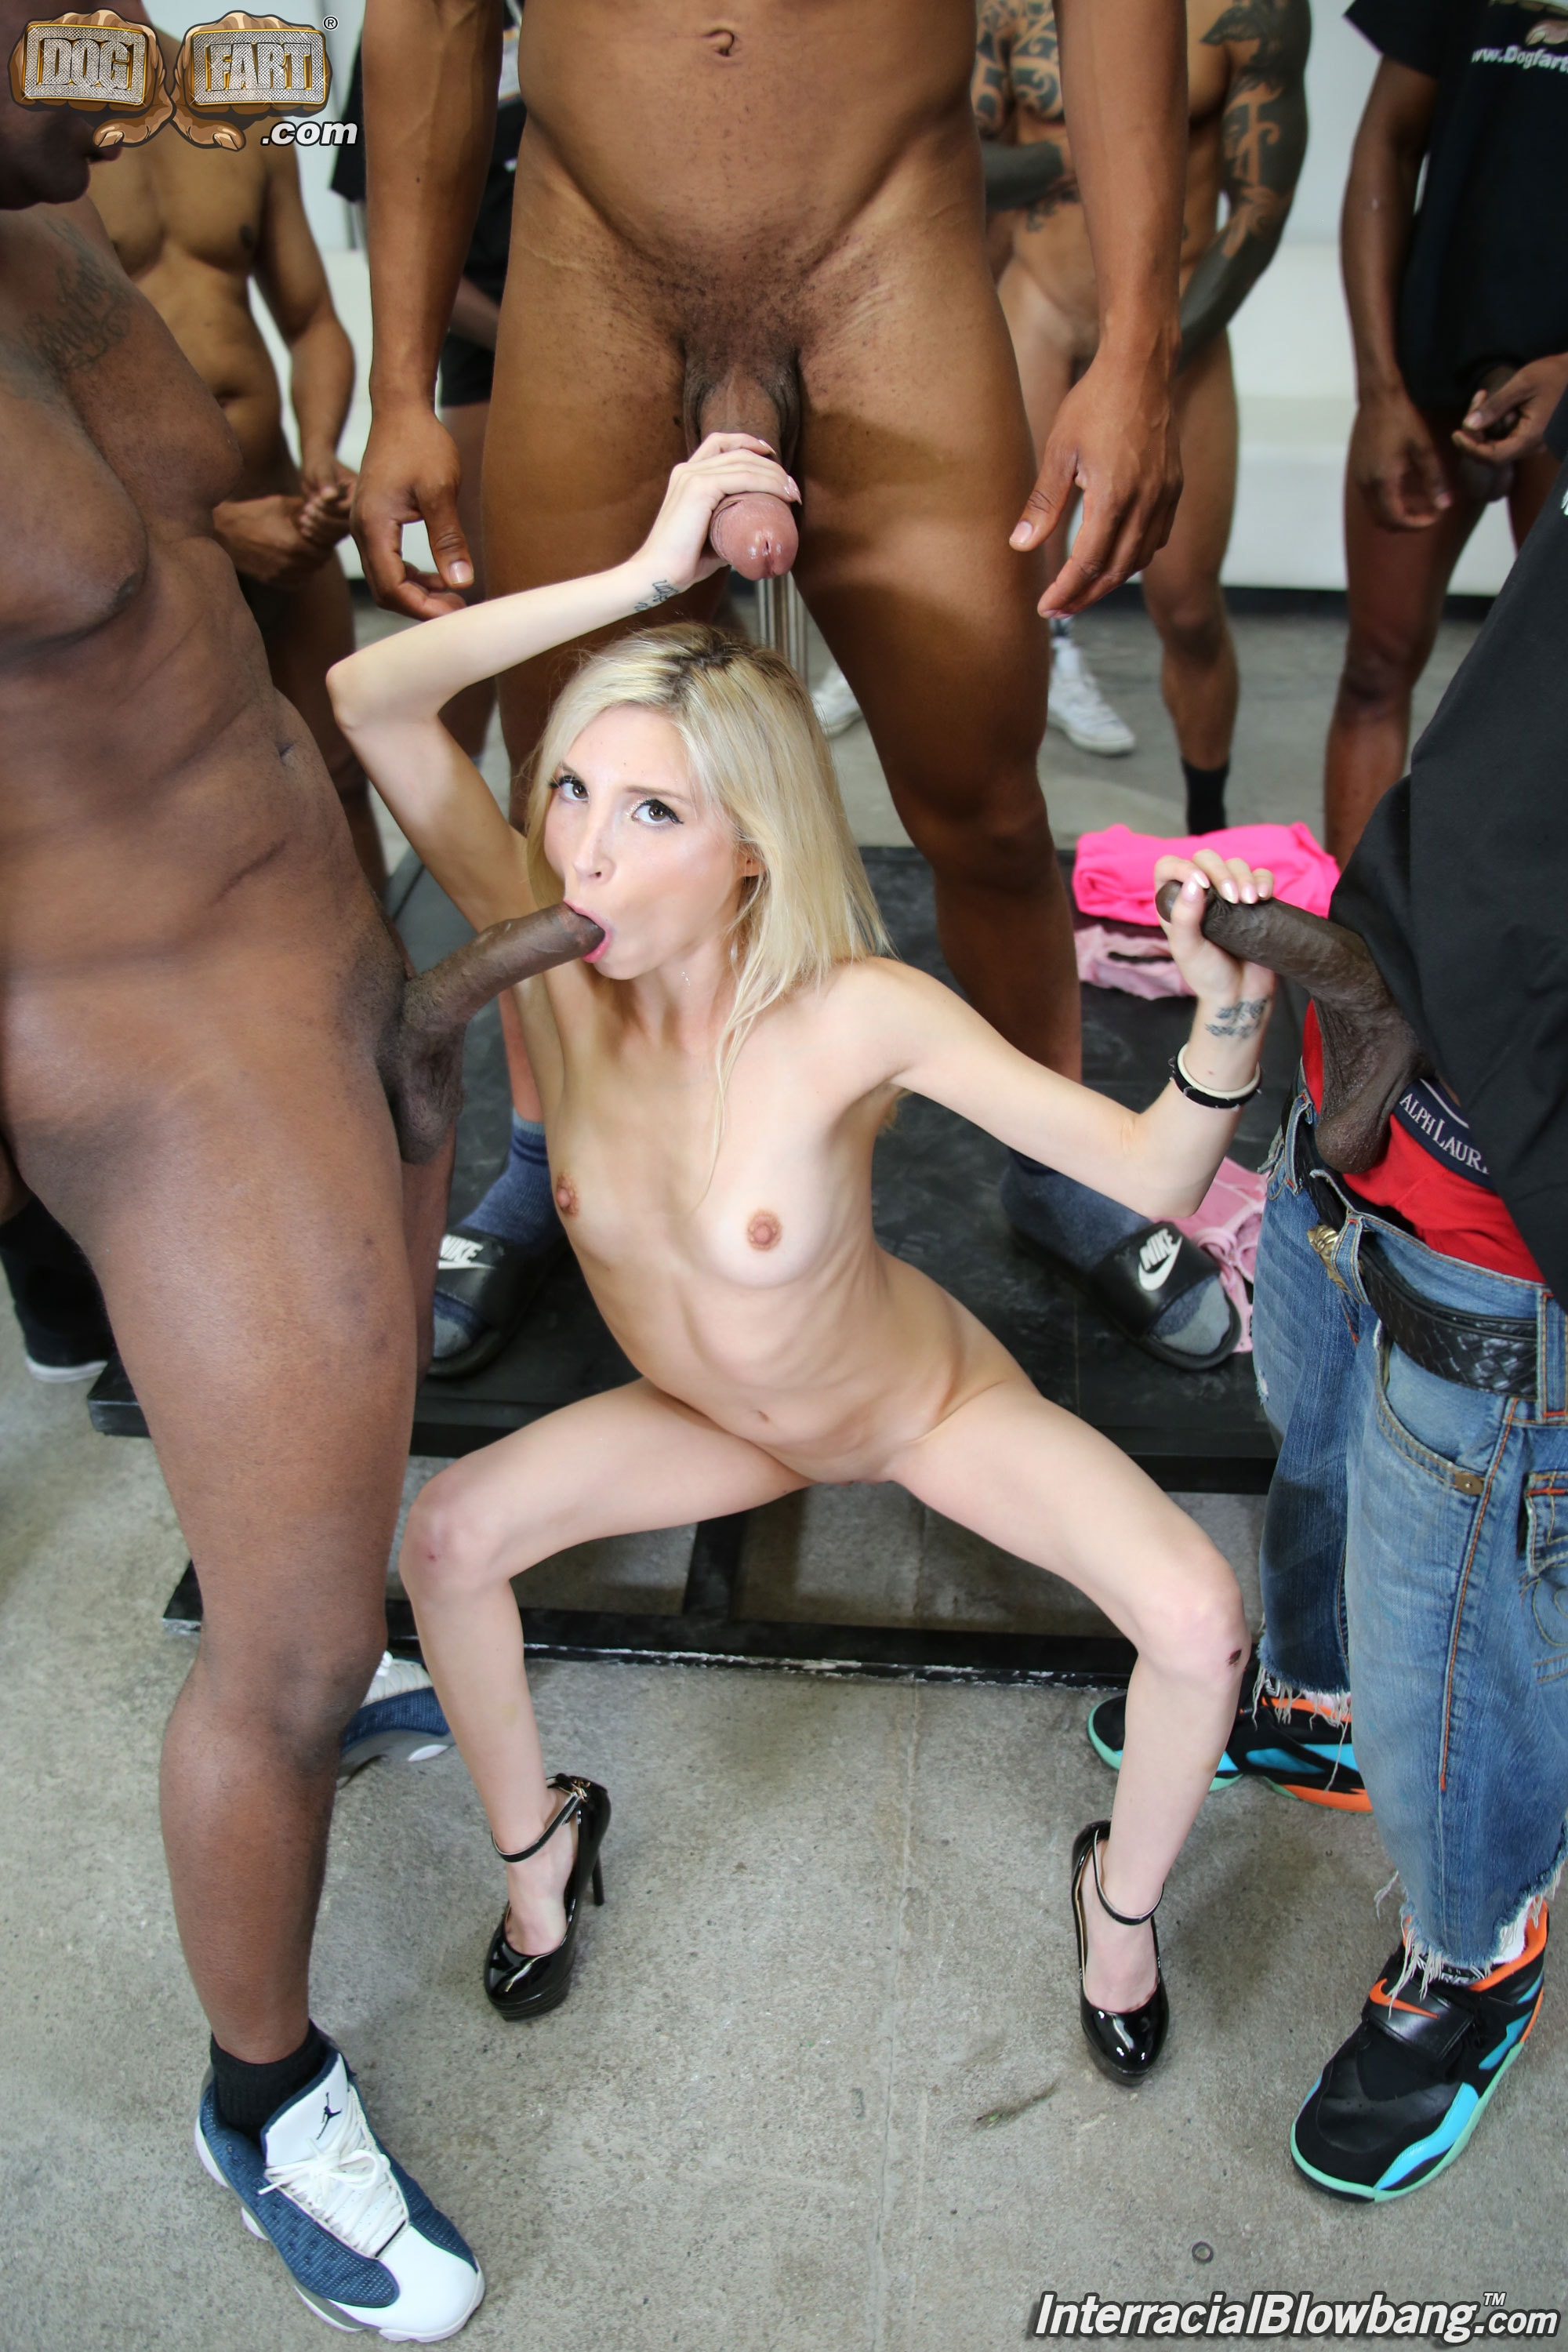 Piper Perry Interracial Gangbang Bred Creampies Free Sex